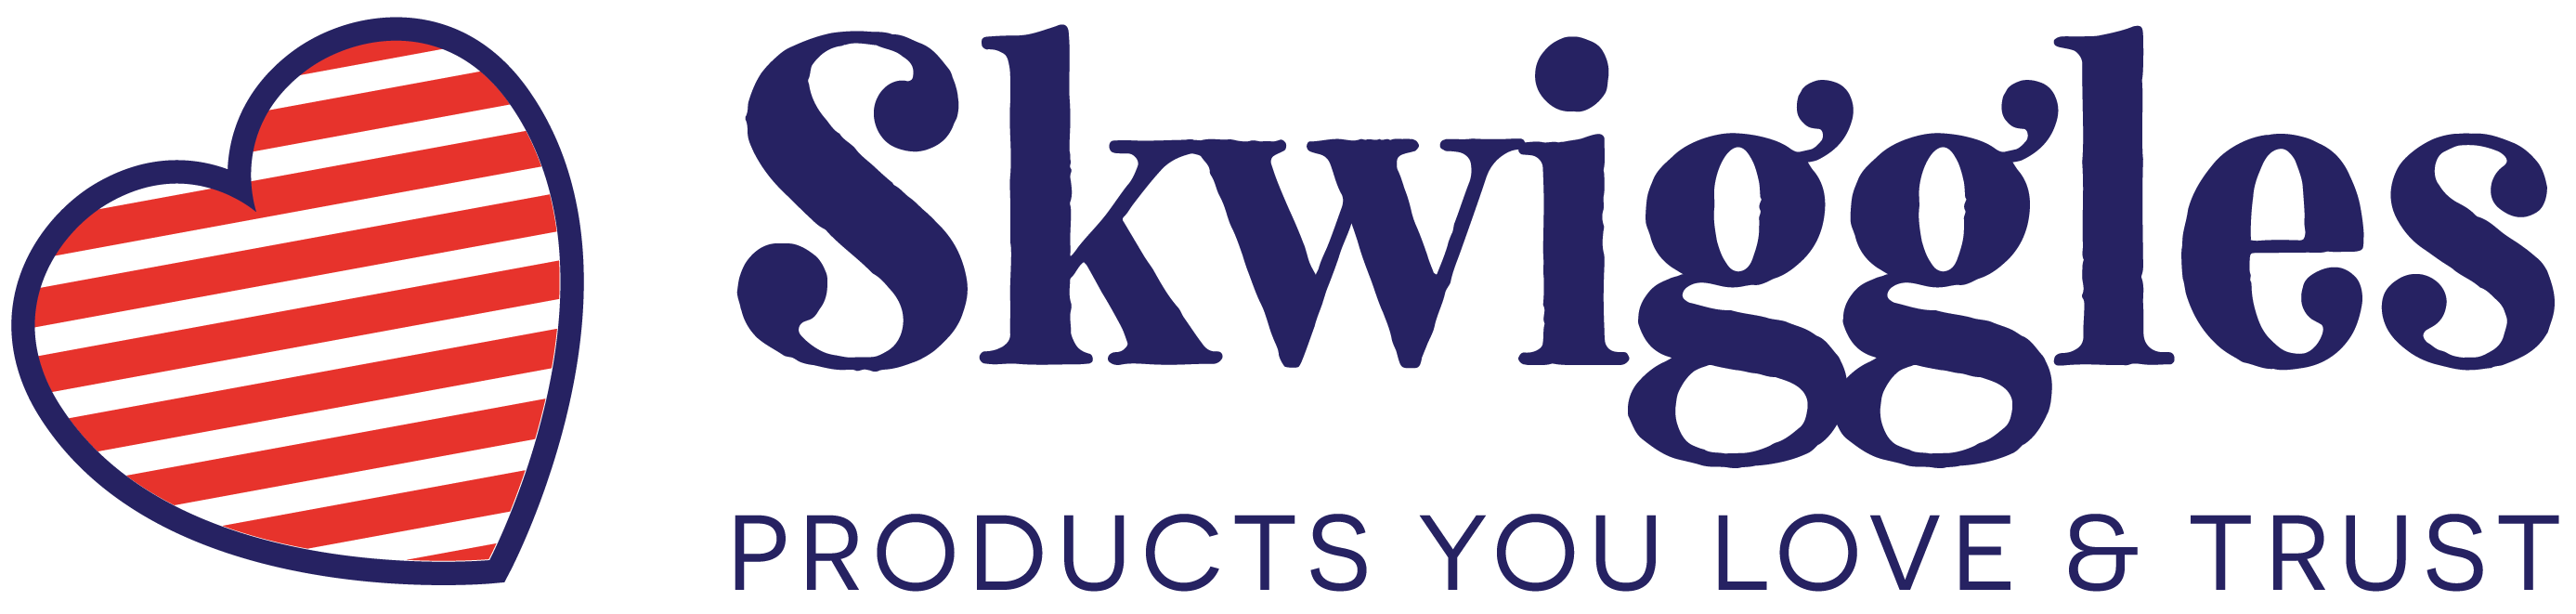 Skwiggles – Providing Products You Love and Trust!